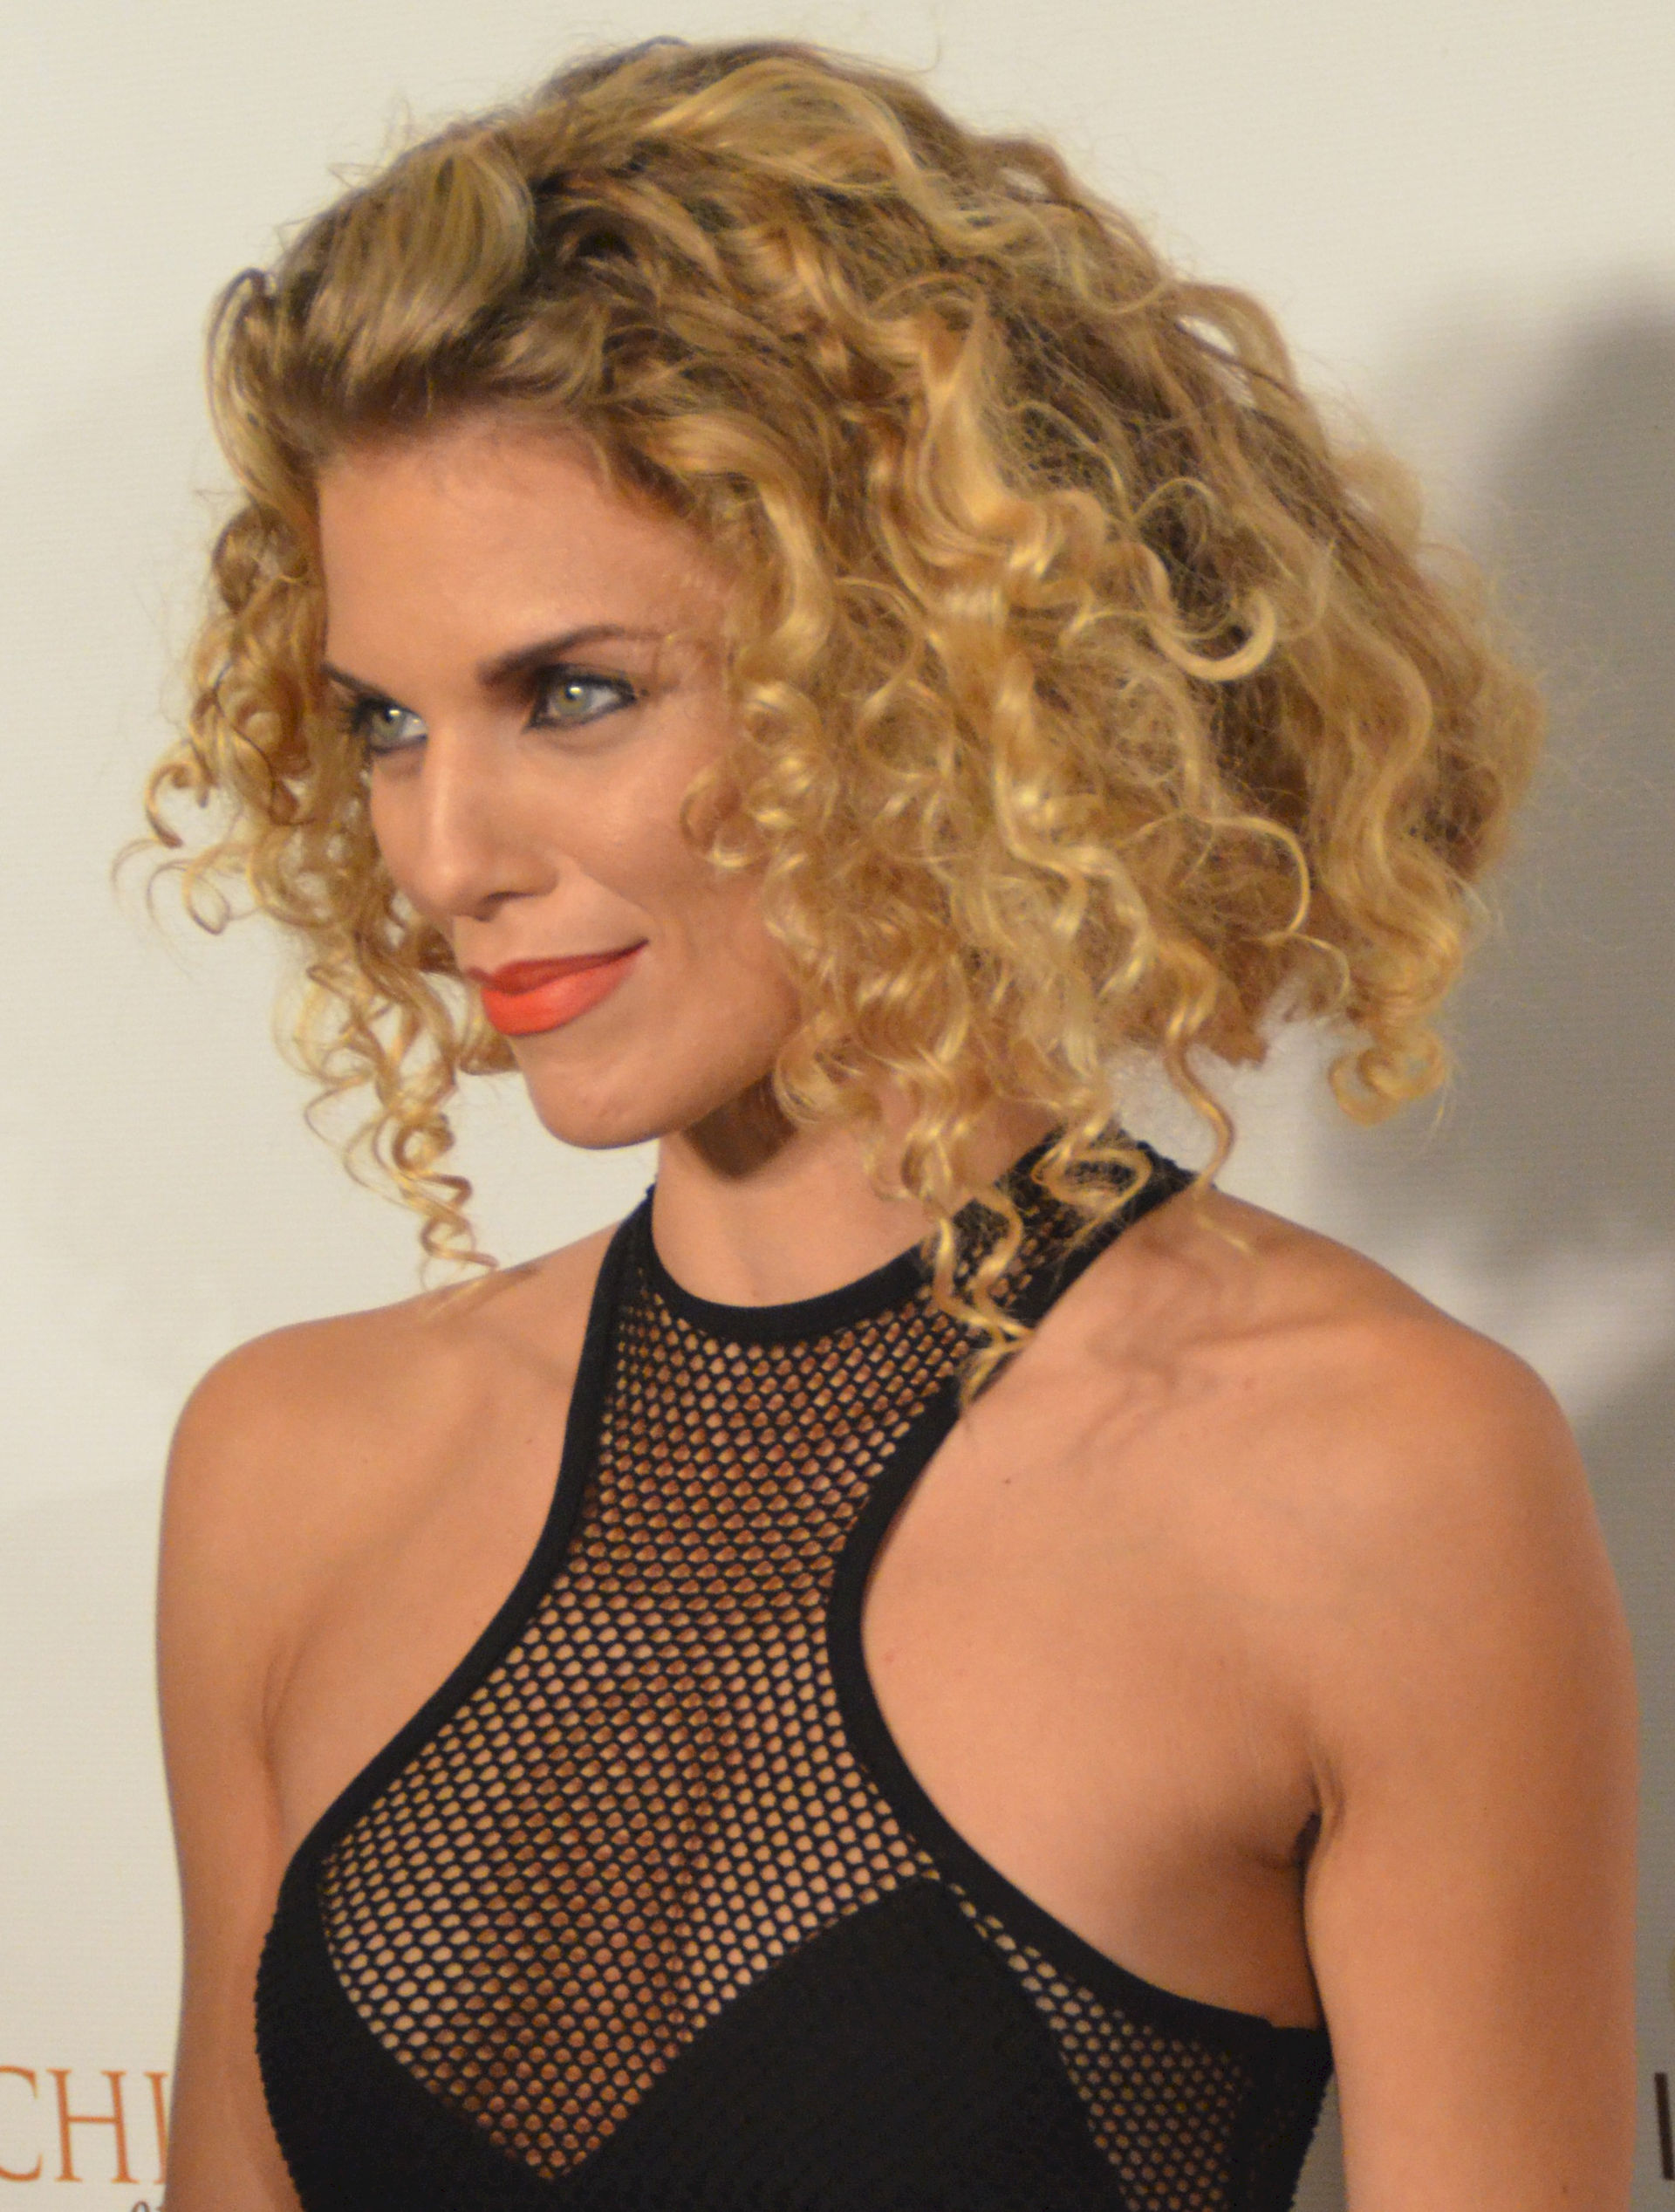 Photo of AnnaLynne McCord: American actress